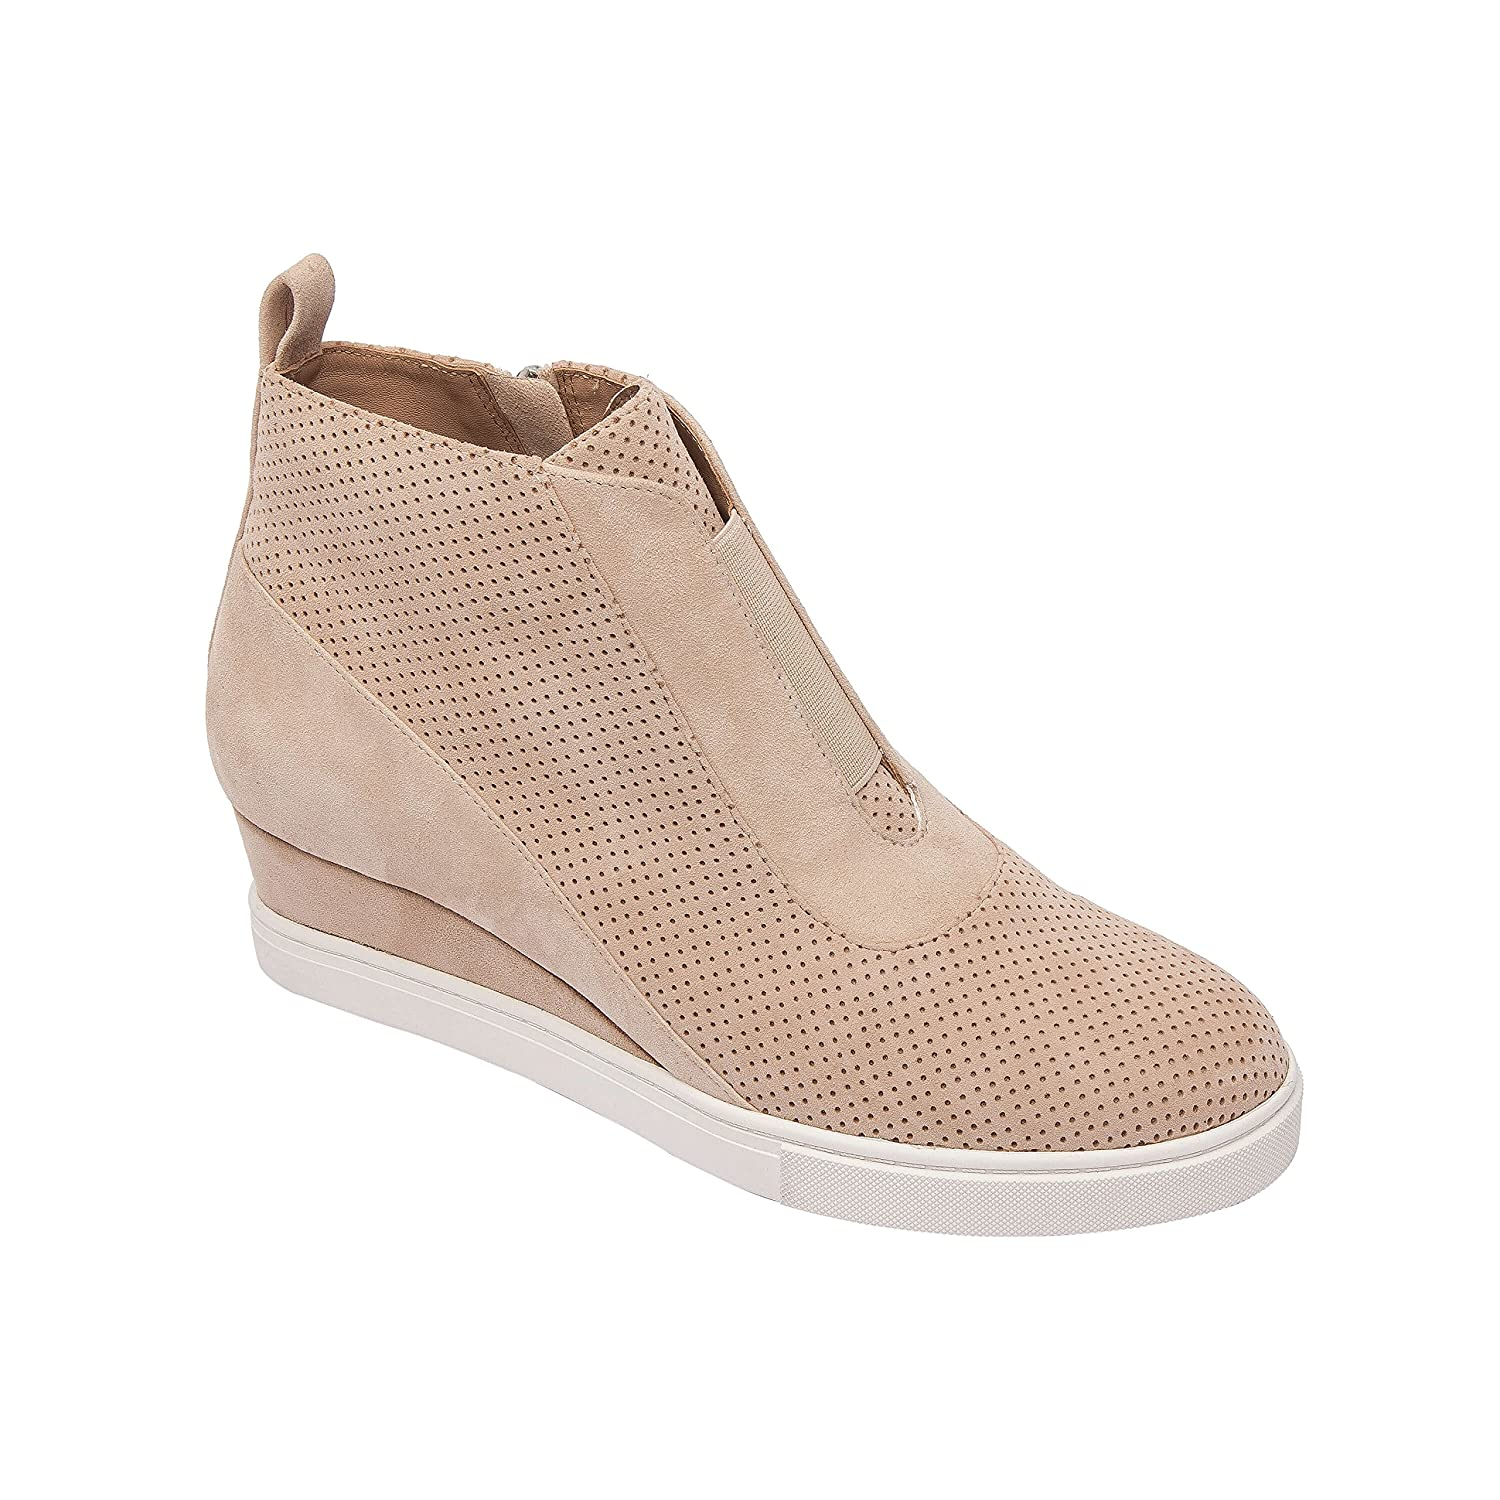 Linea Paolo Anna | Low Heel Designer Platform Wedge Sneaker Bootie Comfortable Fashion Ankle Boot (New Fall) B07F6PB663 9.5 M US|Pink Perforated Suede